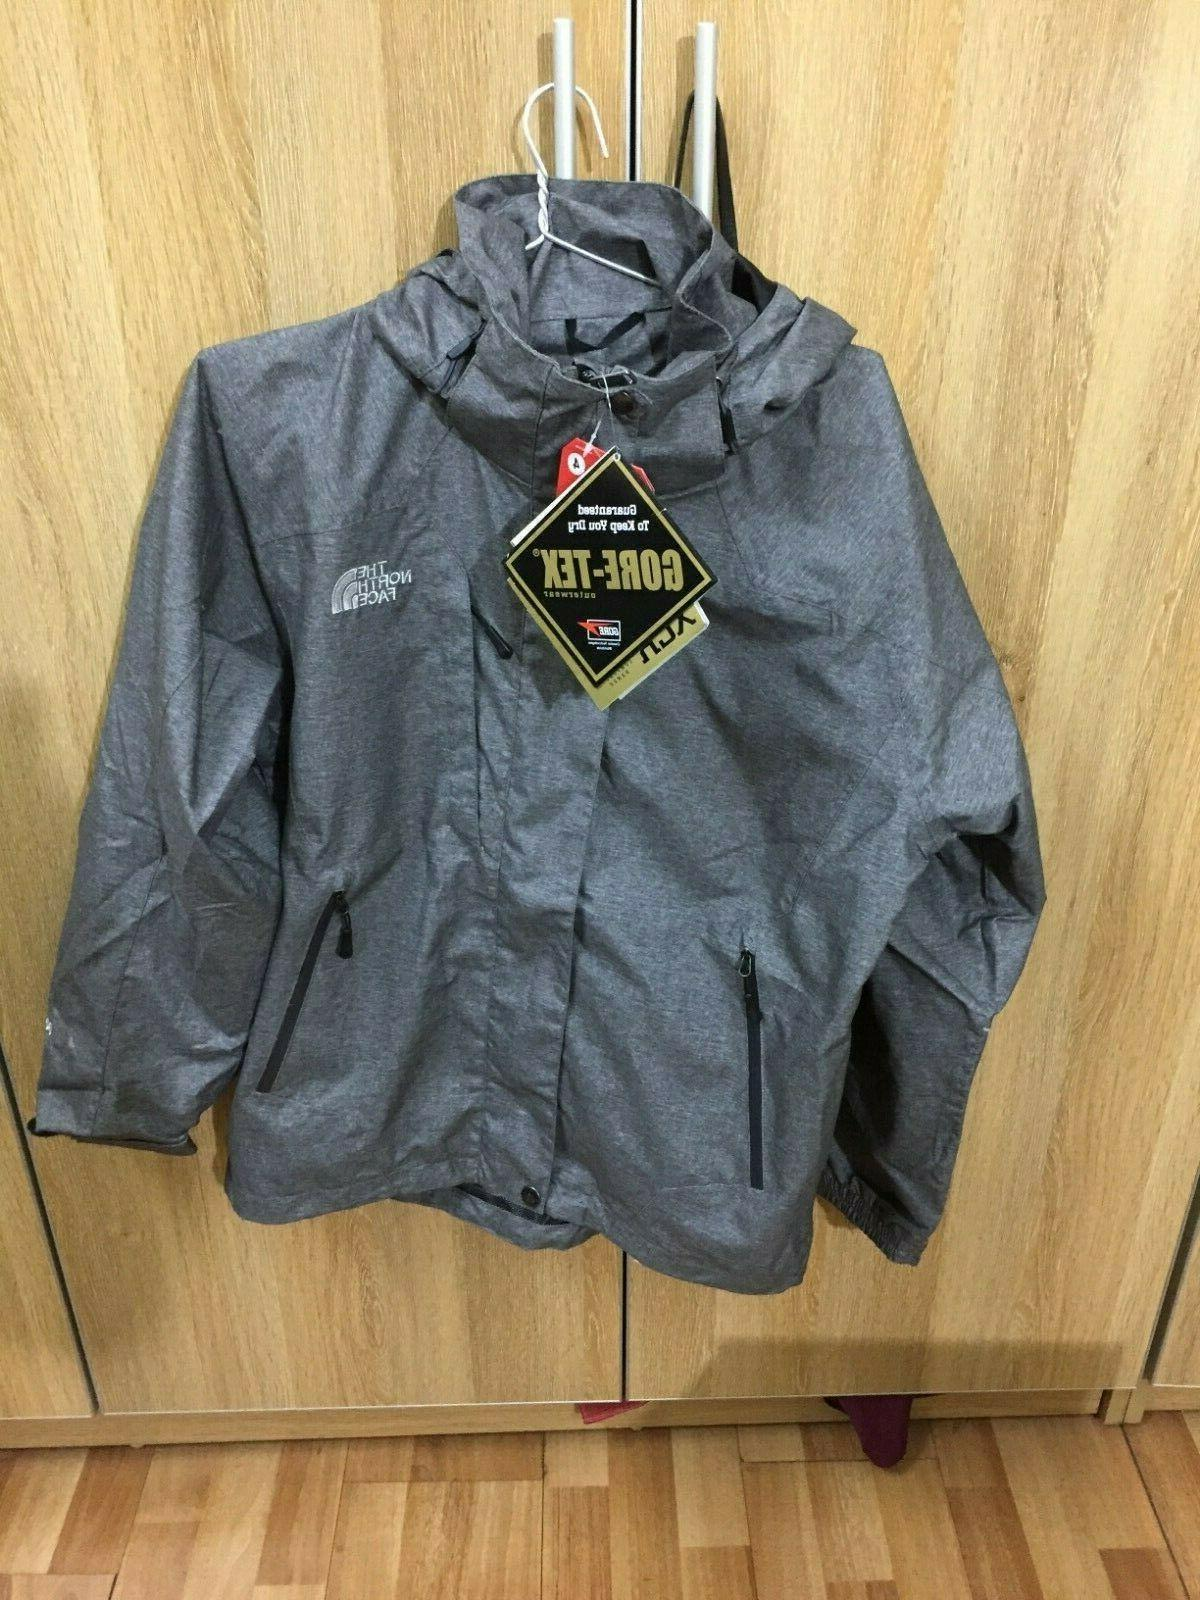 THE SUMMIT SERIES Jacket S M L